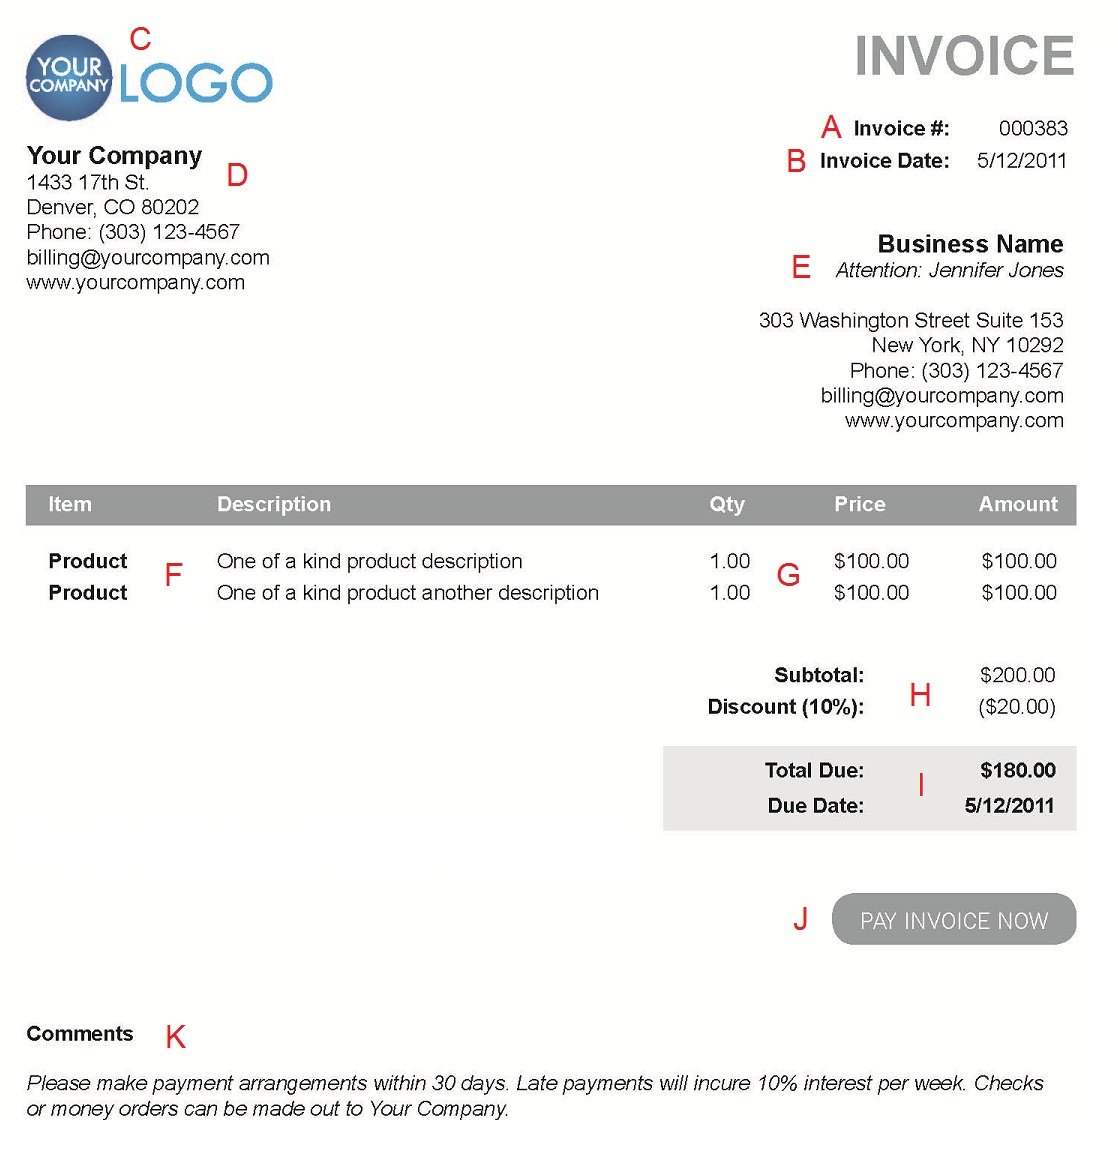 Ultrablogus  Marvellous The  Different Sections Of An Electronic Payment Invoice With Goodlooking A  With Agreeable Lease Invoice Template Also Walmart Receipt In Addition How To Turn Off Read Receipts And Best Buy Receipt As Well As Receipt Template Word Additionally Taxi Receipt From Paysimplecom With Ultrablogus  Goodlooking The  Different Sections Of An Electronic Payment Invoice With Agreeable A  And Marvellous Lease Invoice Template Also Walmart Receipt In Addition How To Turn Off Read Receipts From Paysimplecom